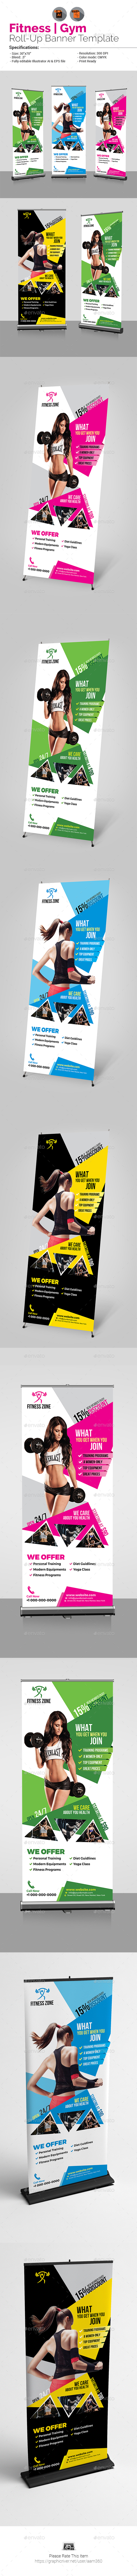 GraphicRiver Fitness Gym Roll-Up Template 20888352